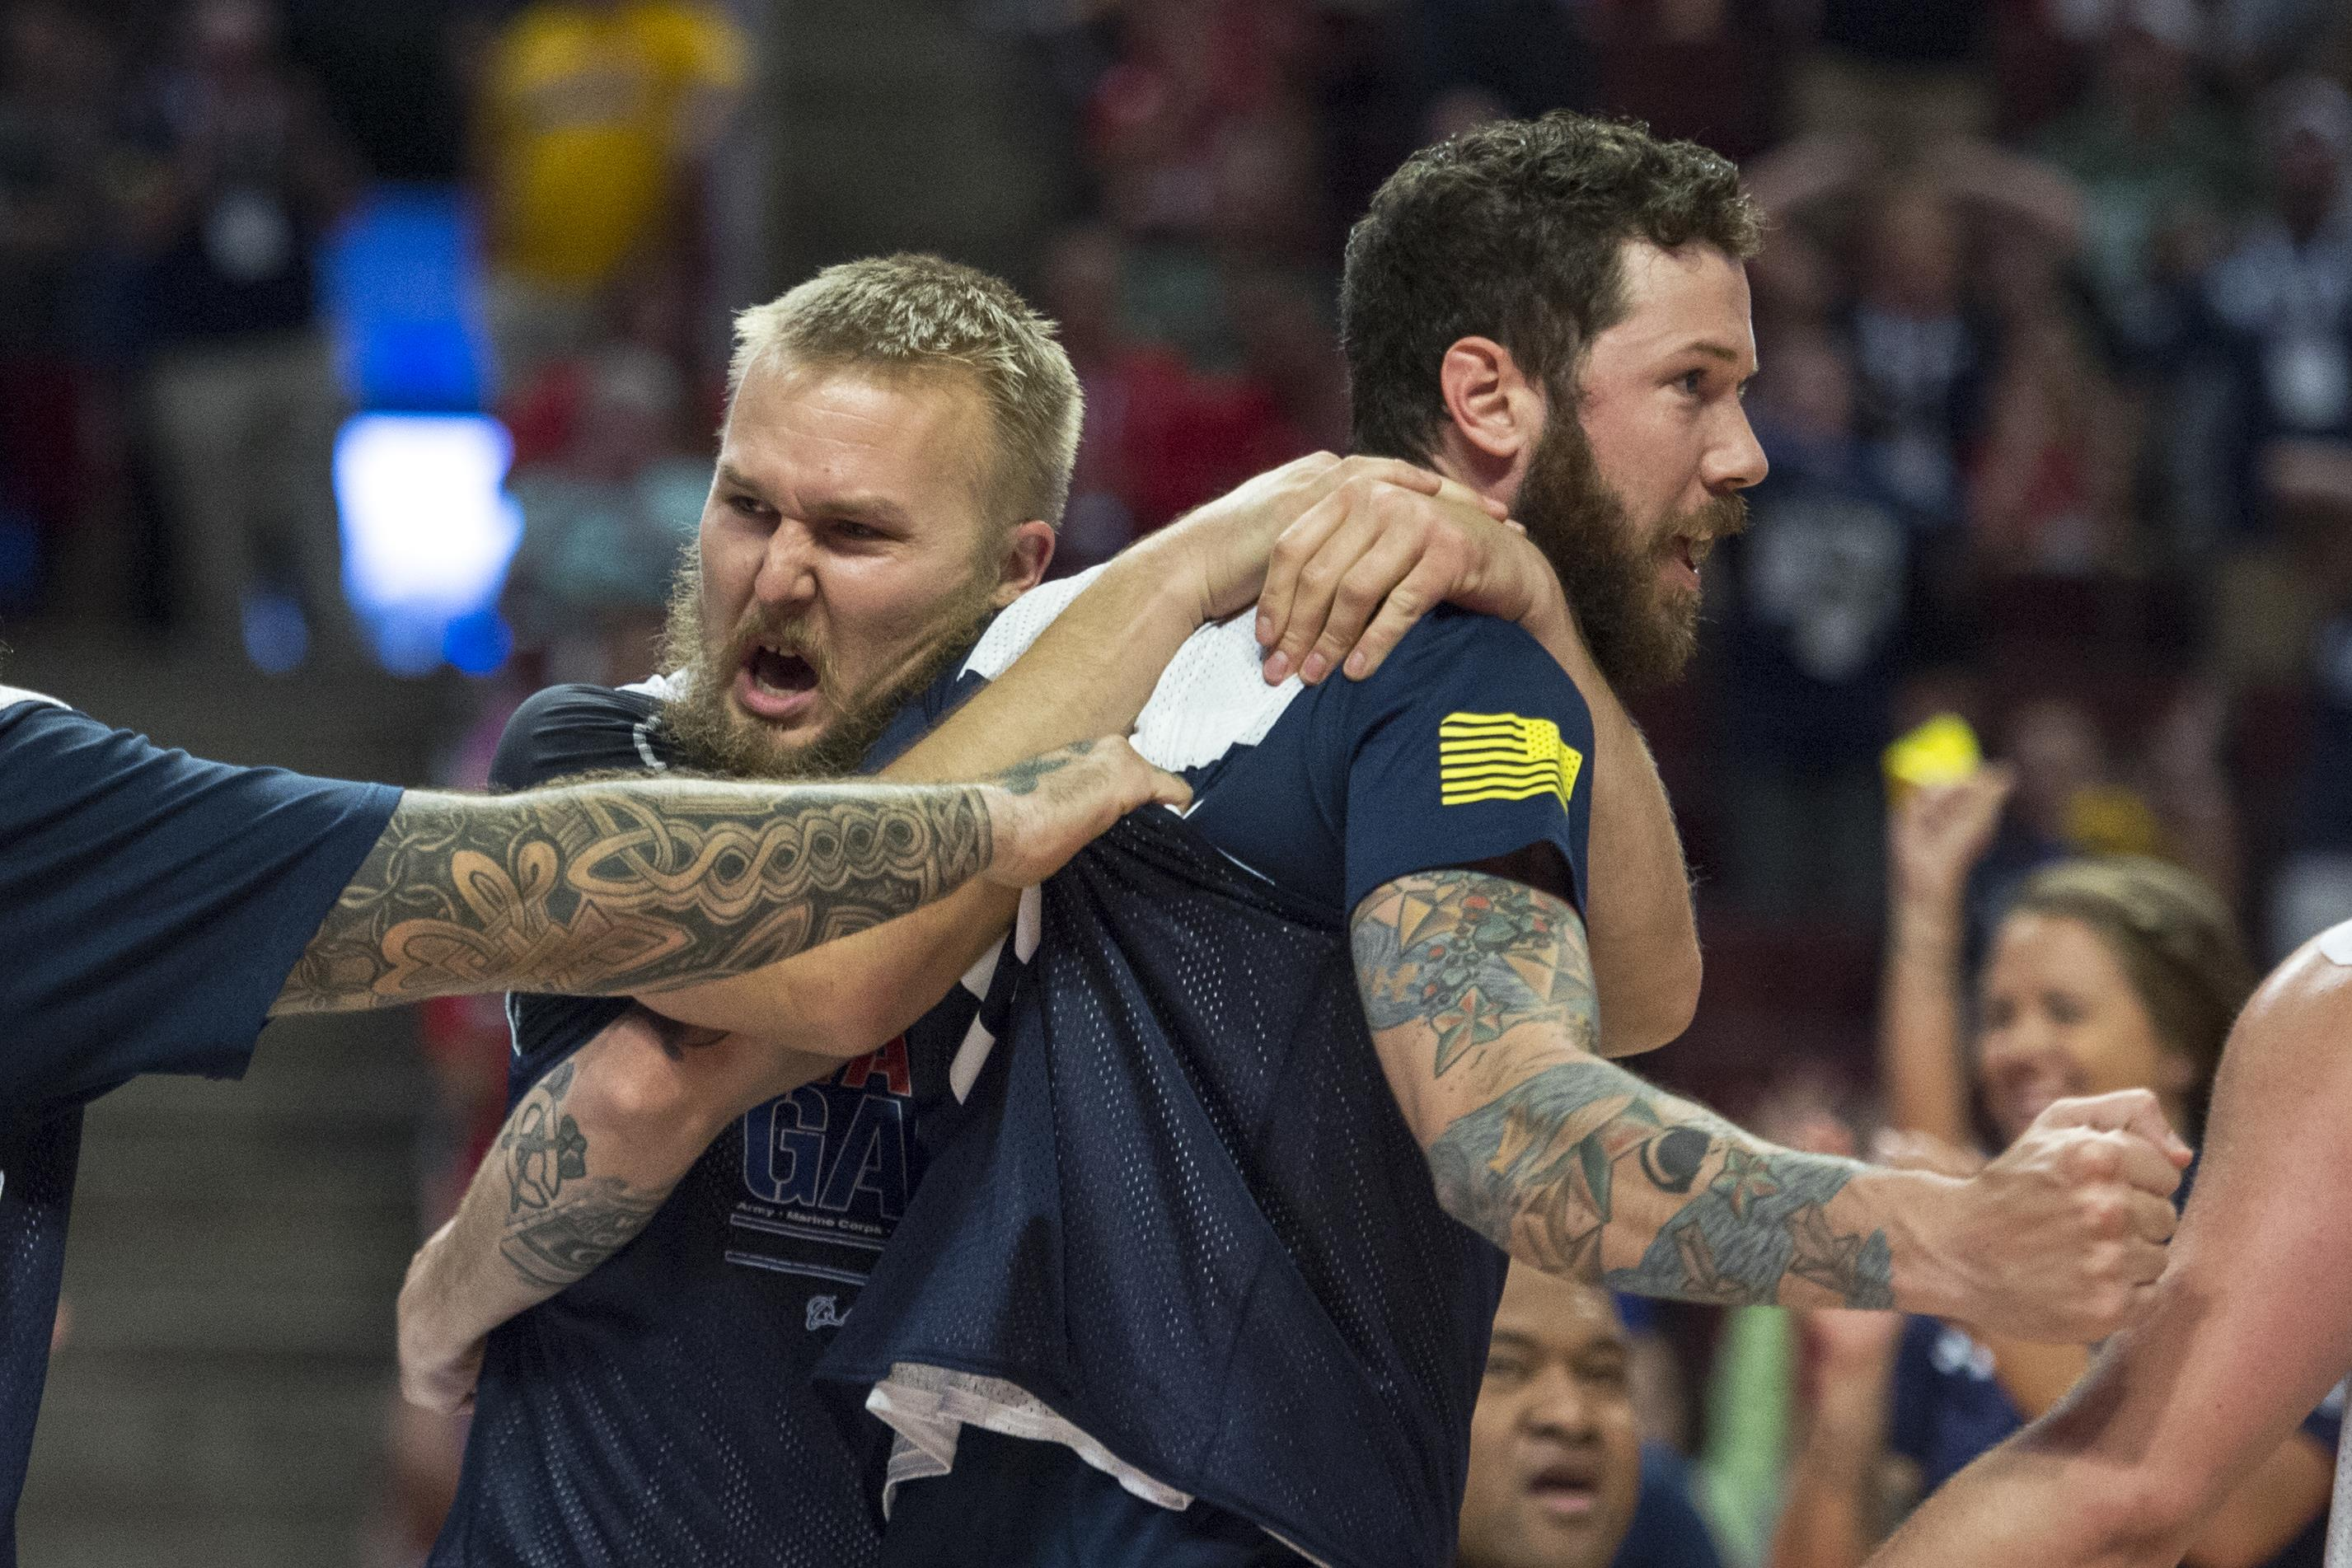 Two veterans hug at the volleyball competition.